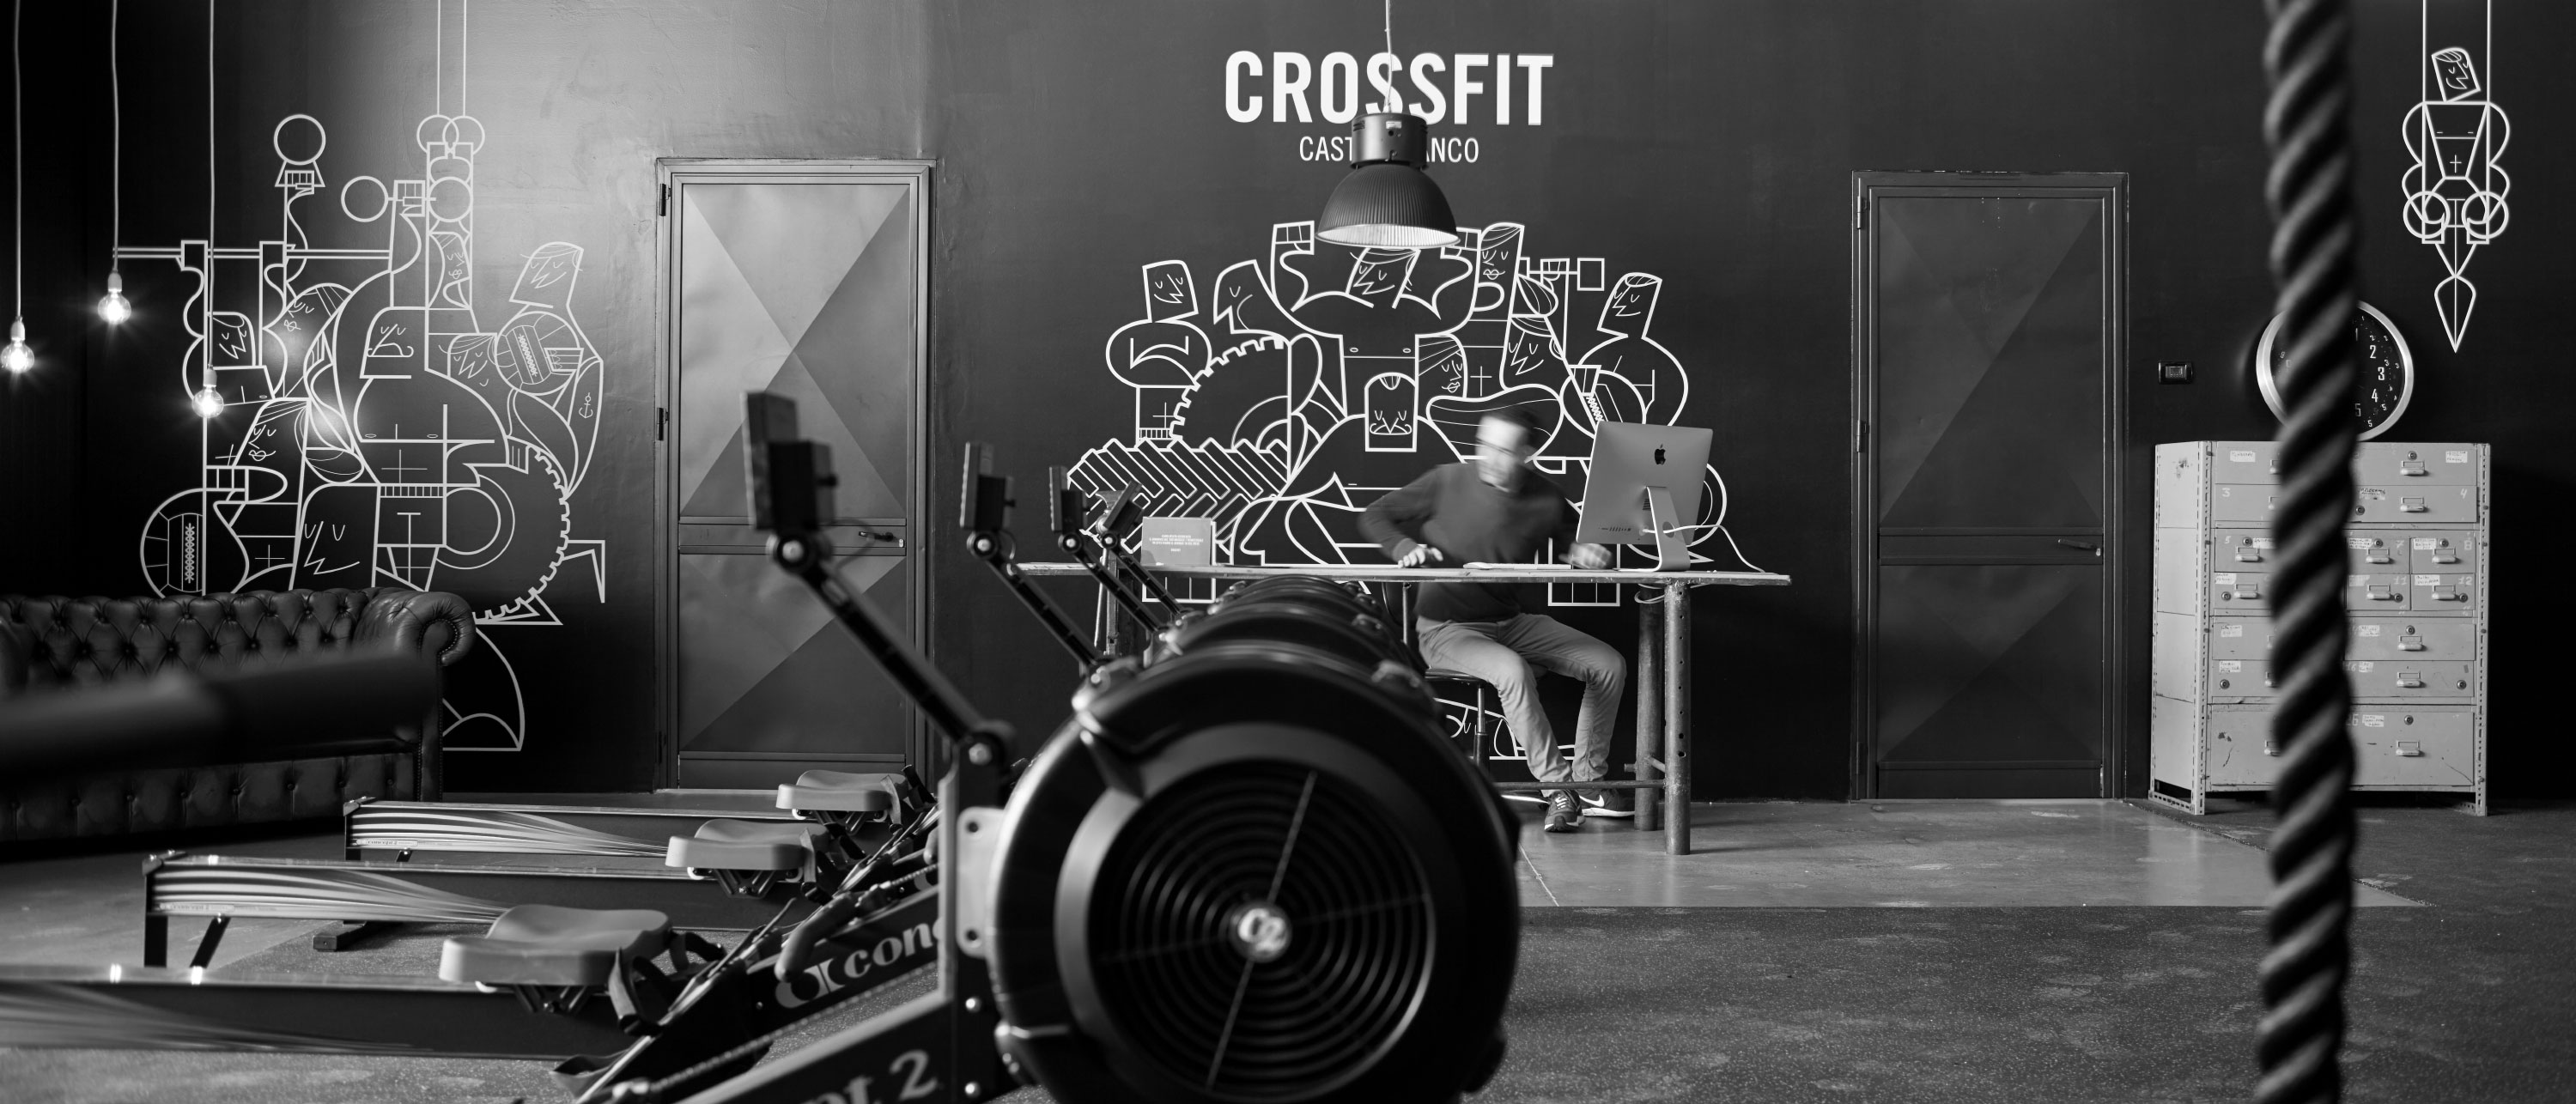 crossfit_castelfranco_spaces03